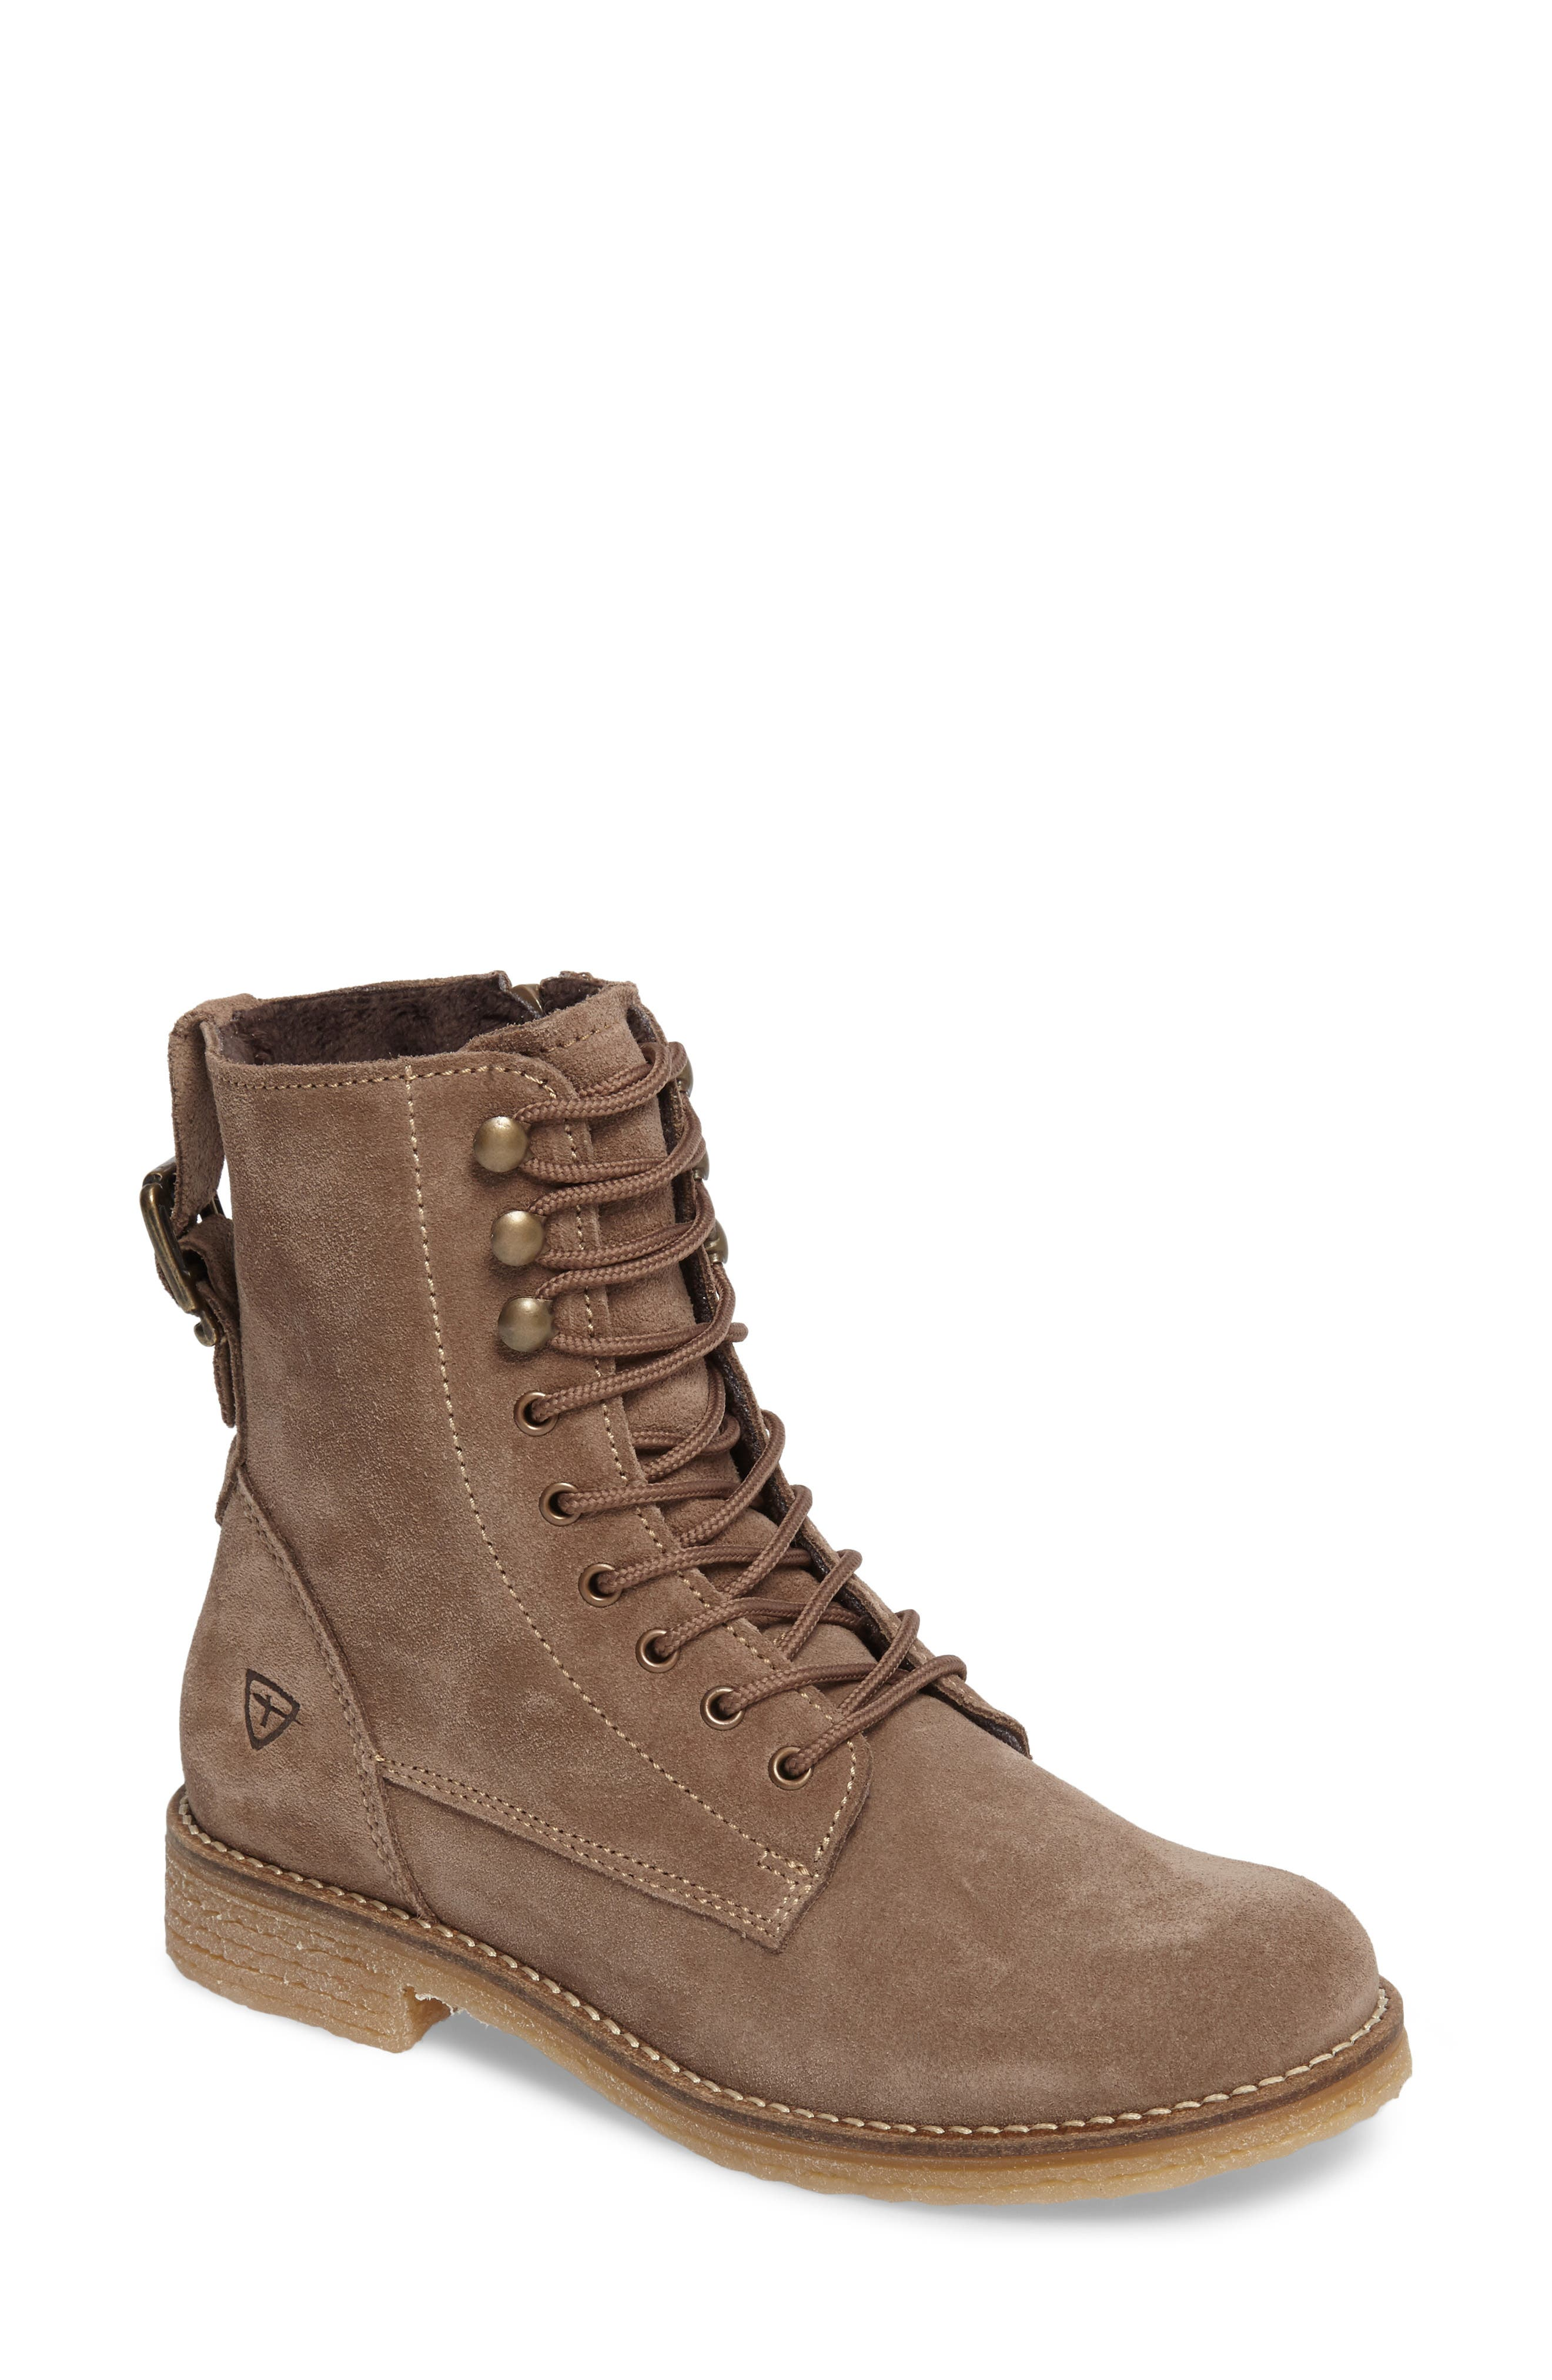 Main Image - Tamaris Crepona Lace-Up Bootie (Women)